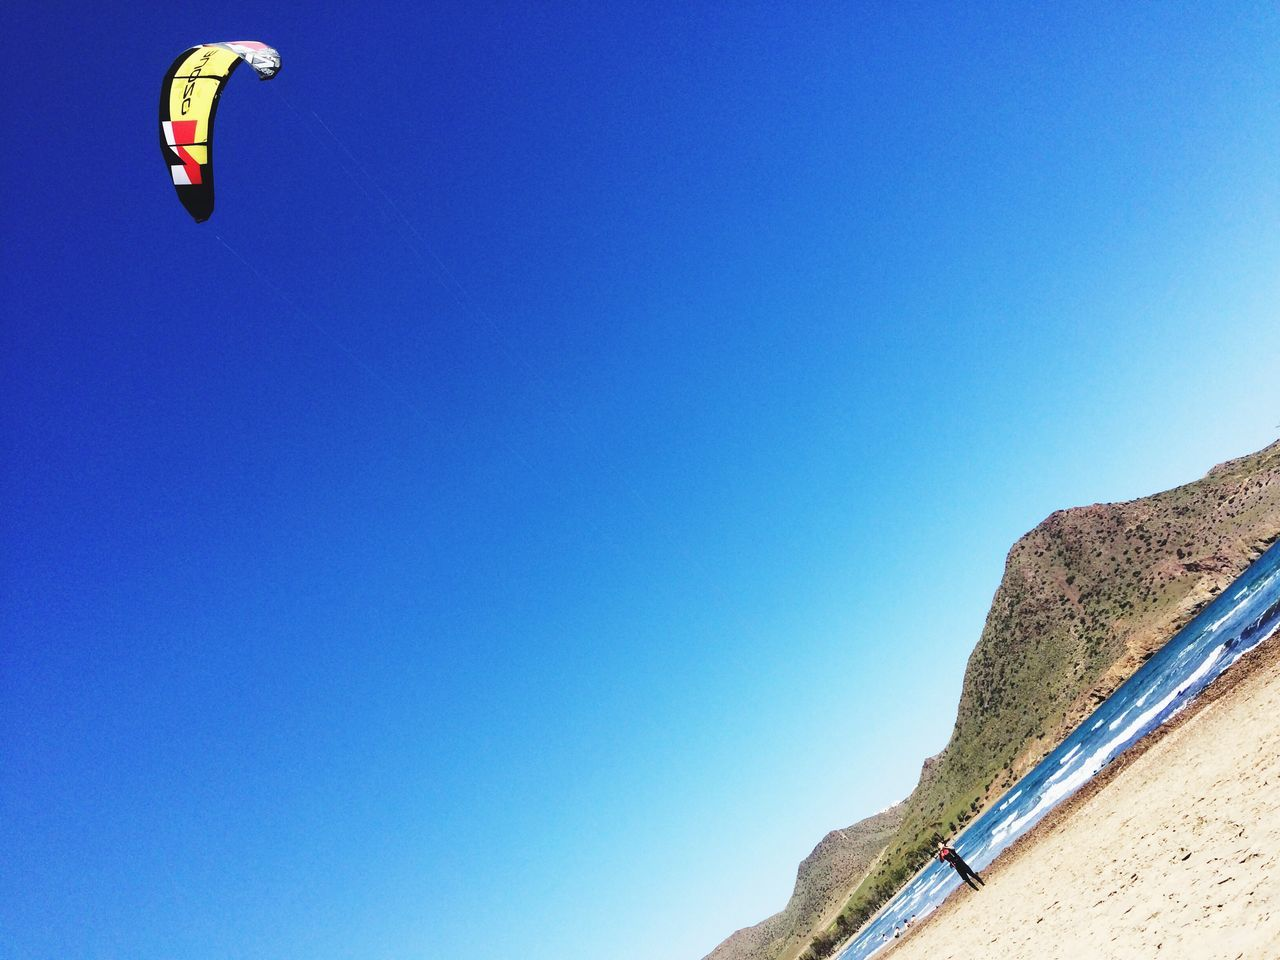 copy space, blue, clear sky, day, adventure, low angle view, outdoors, mountain, no people, nature, beauty in nature, parachute, sky, paragliding